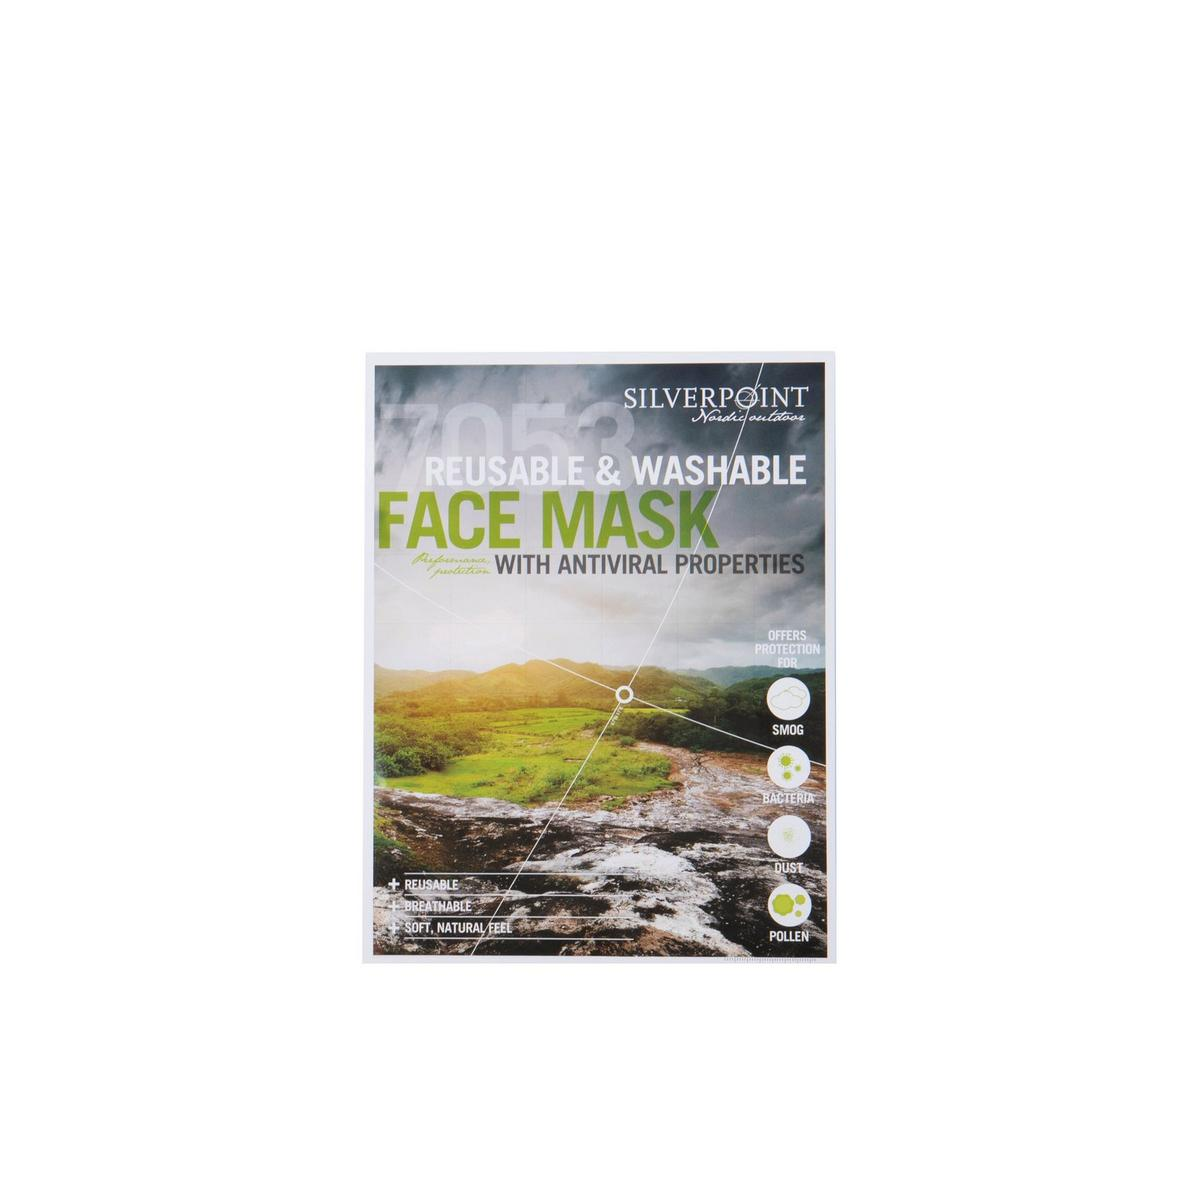 Silverpoint U Silverpoint Antiviral Face Mask - Green